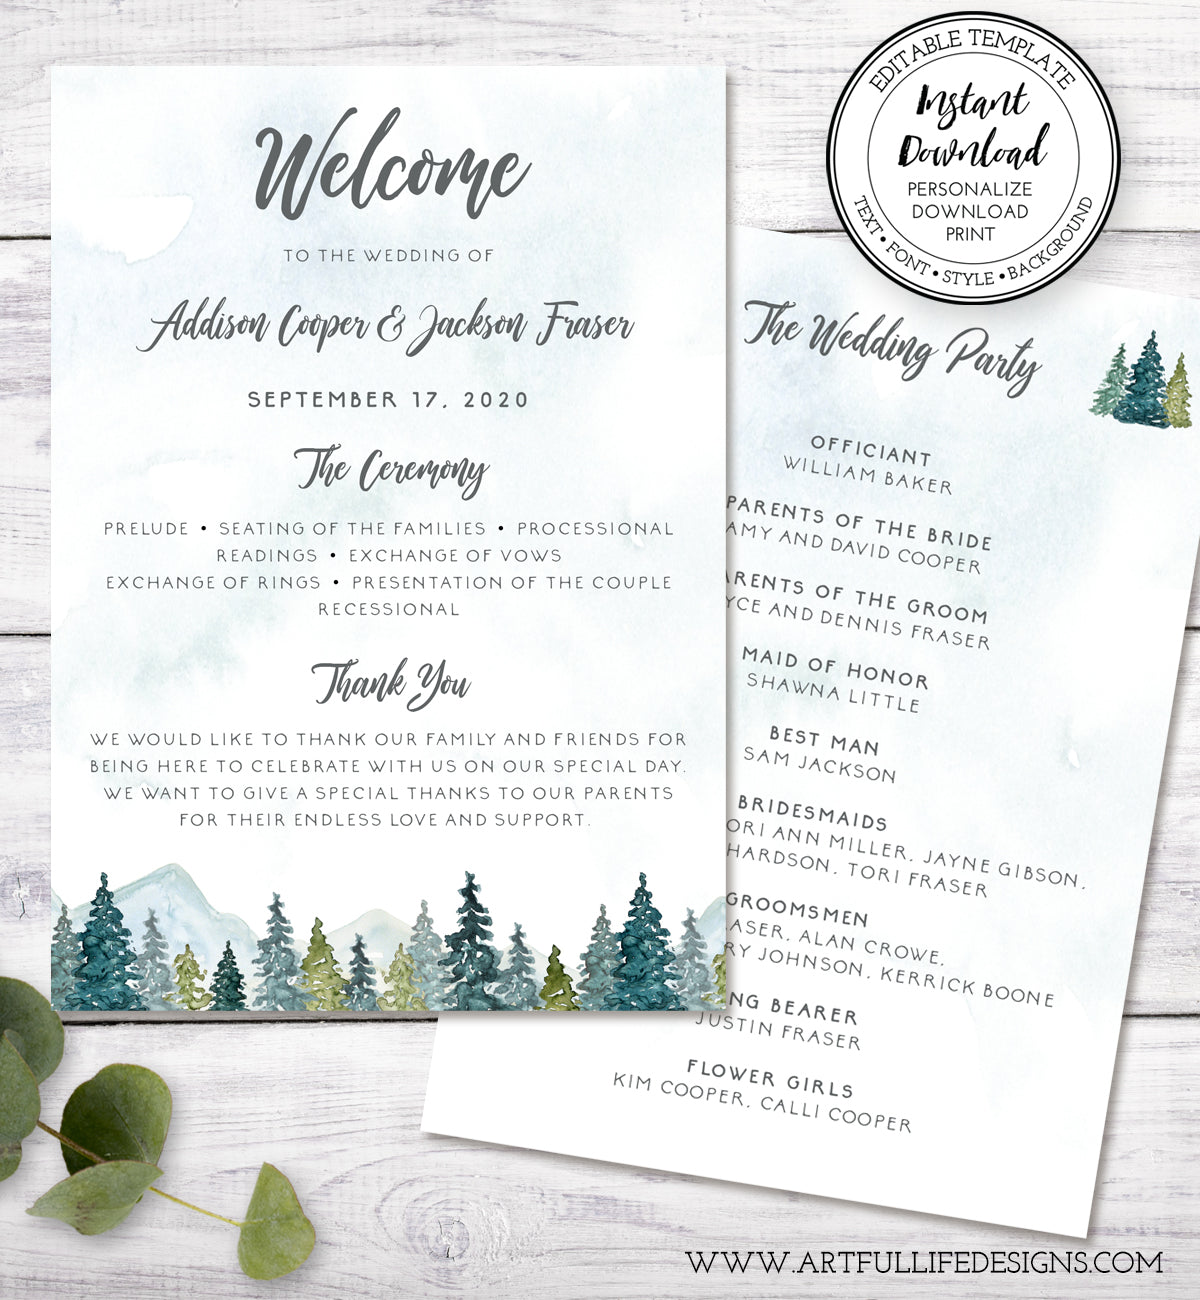 5 x 7 double sided wedding program, mountains & pine trees